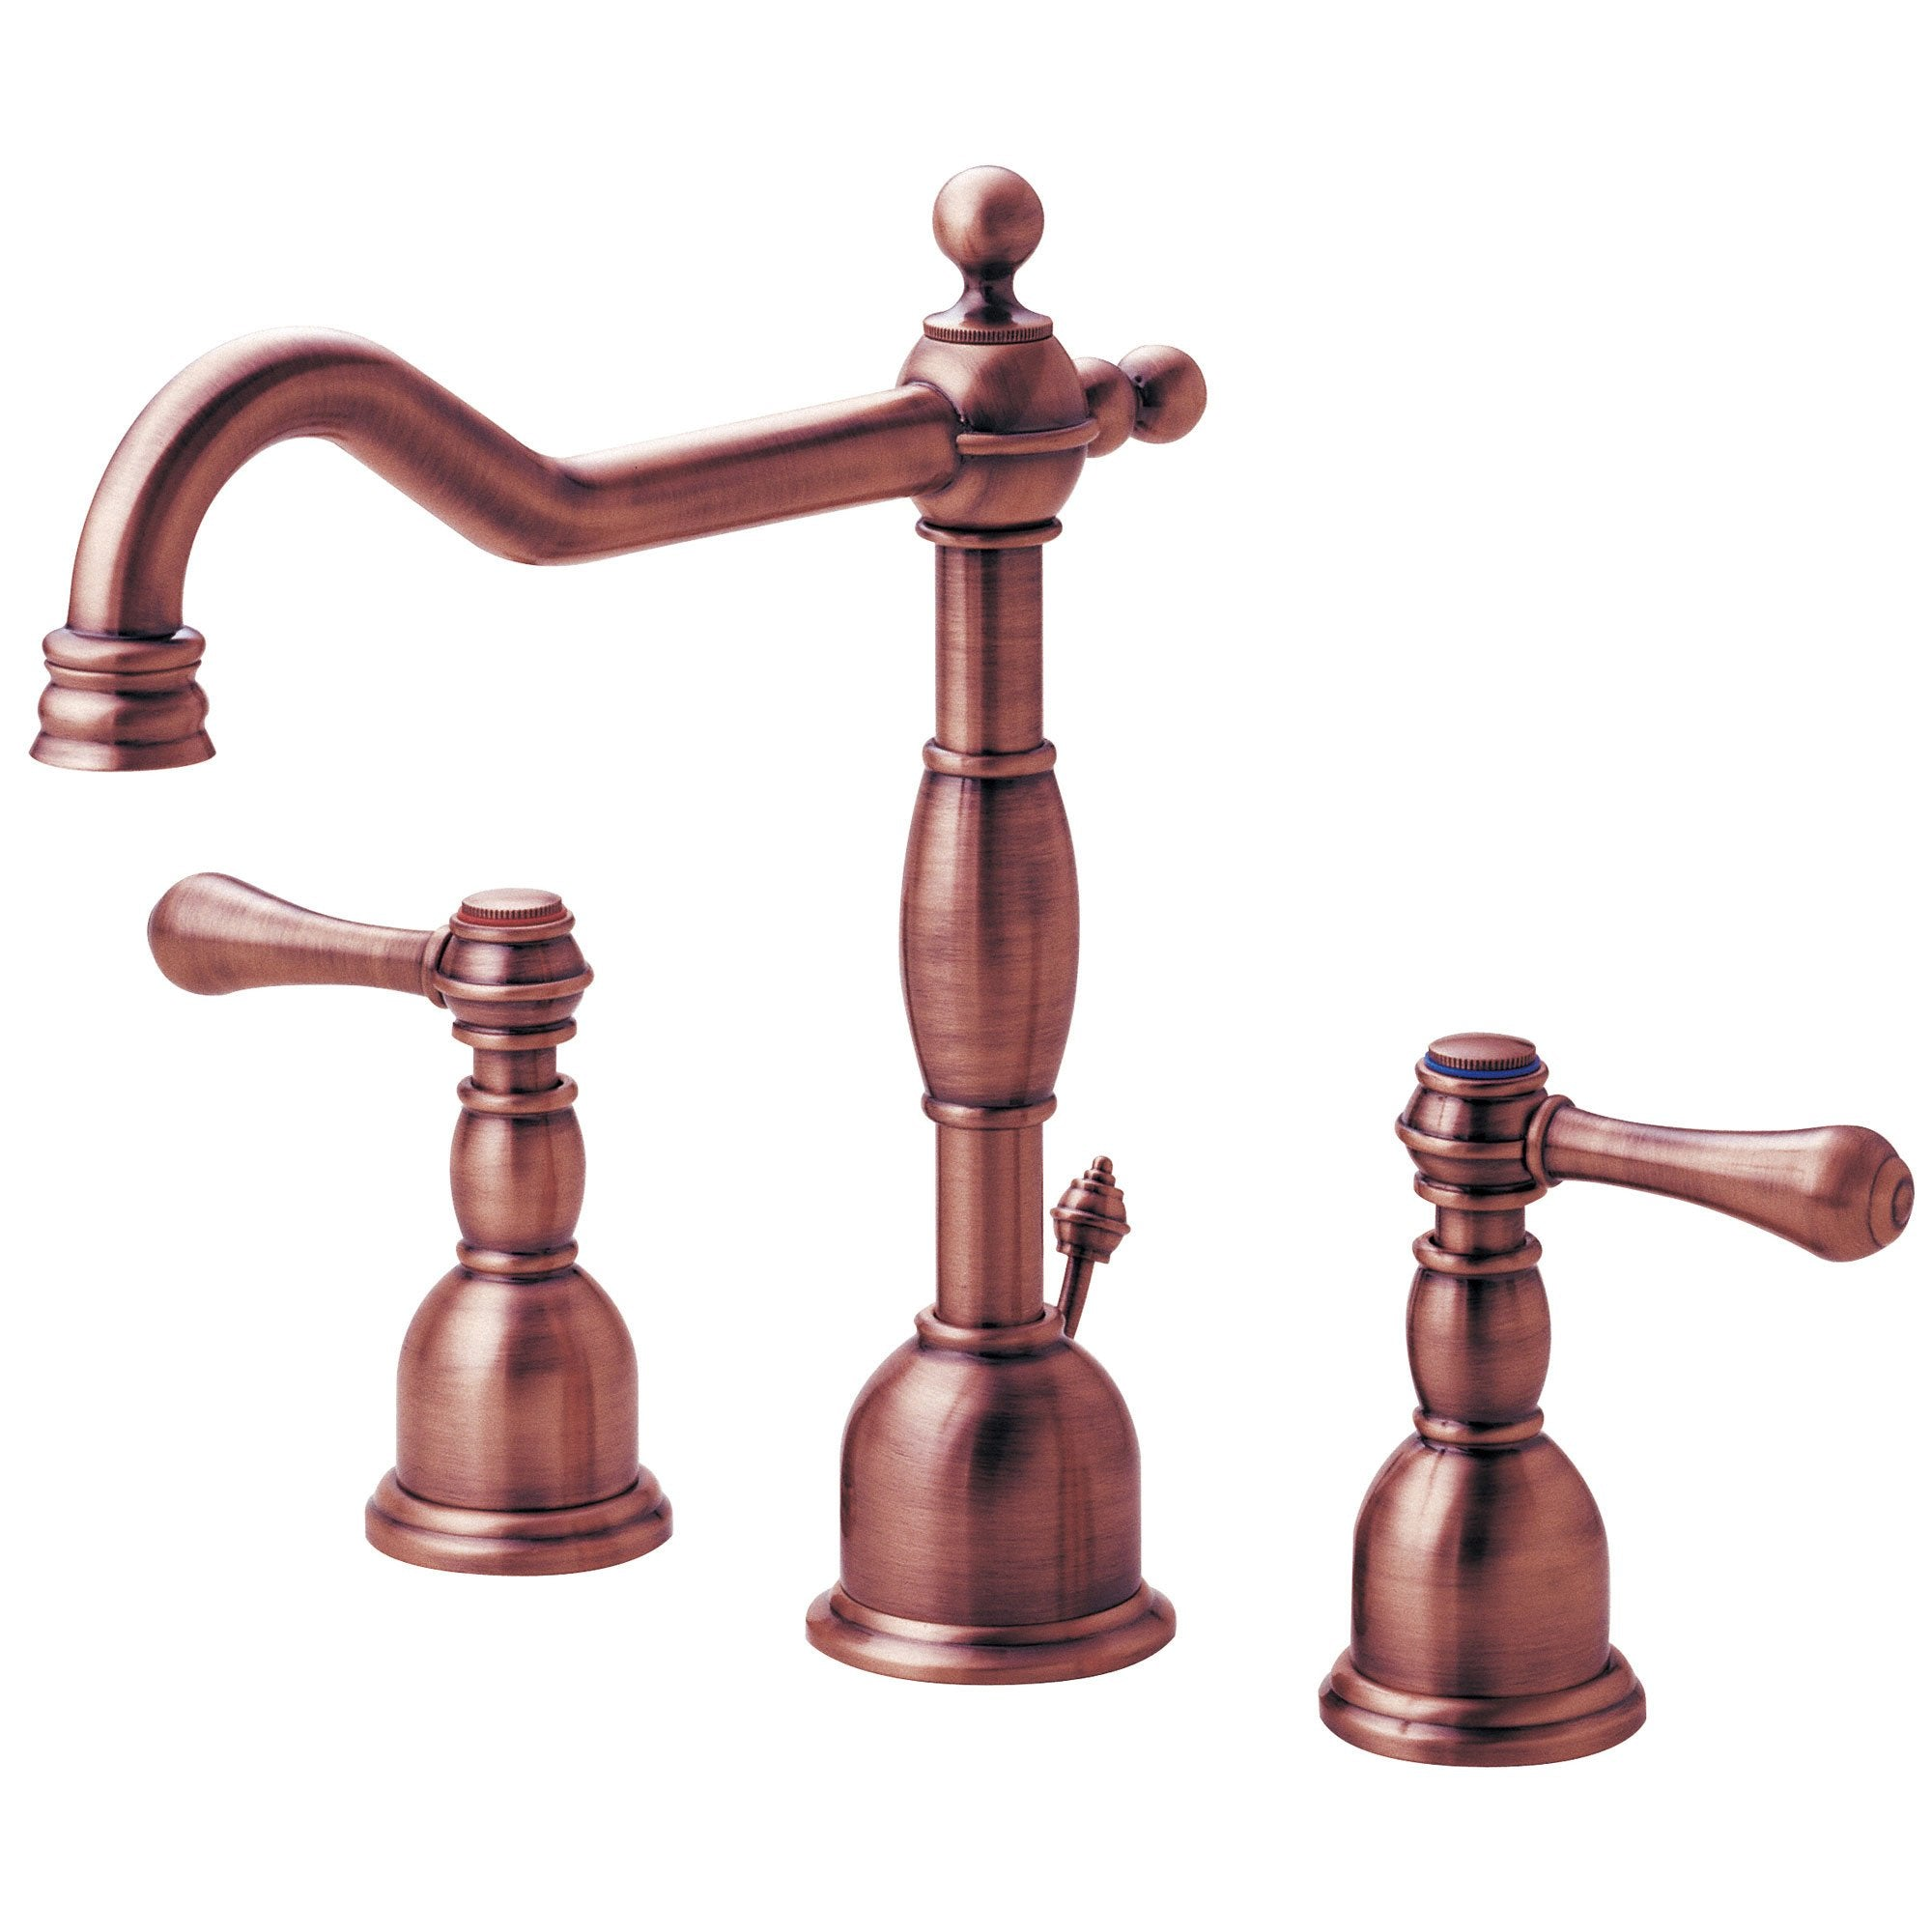 Danze Opulence Antique Copper Traditional Widespread Bathroom Sink Faucet